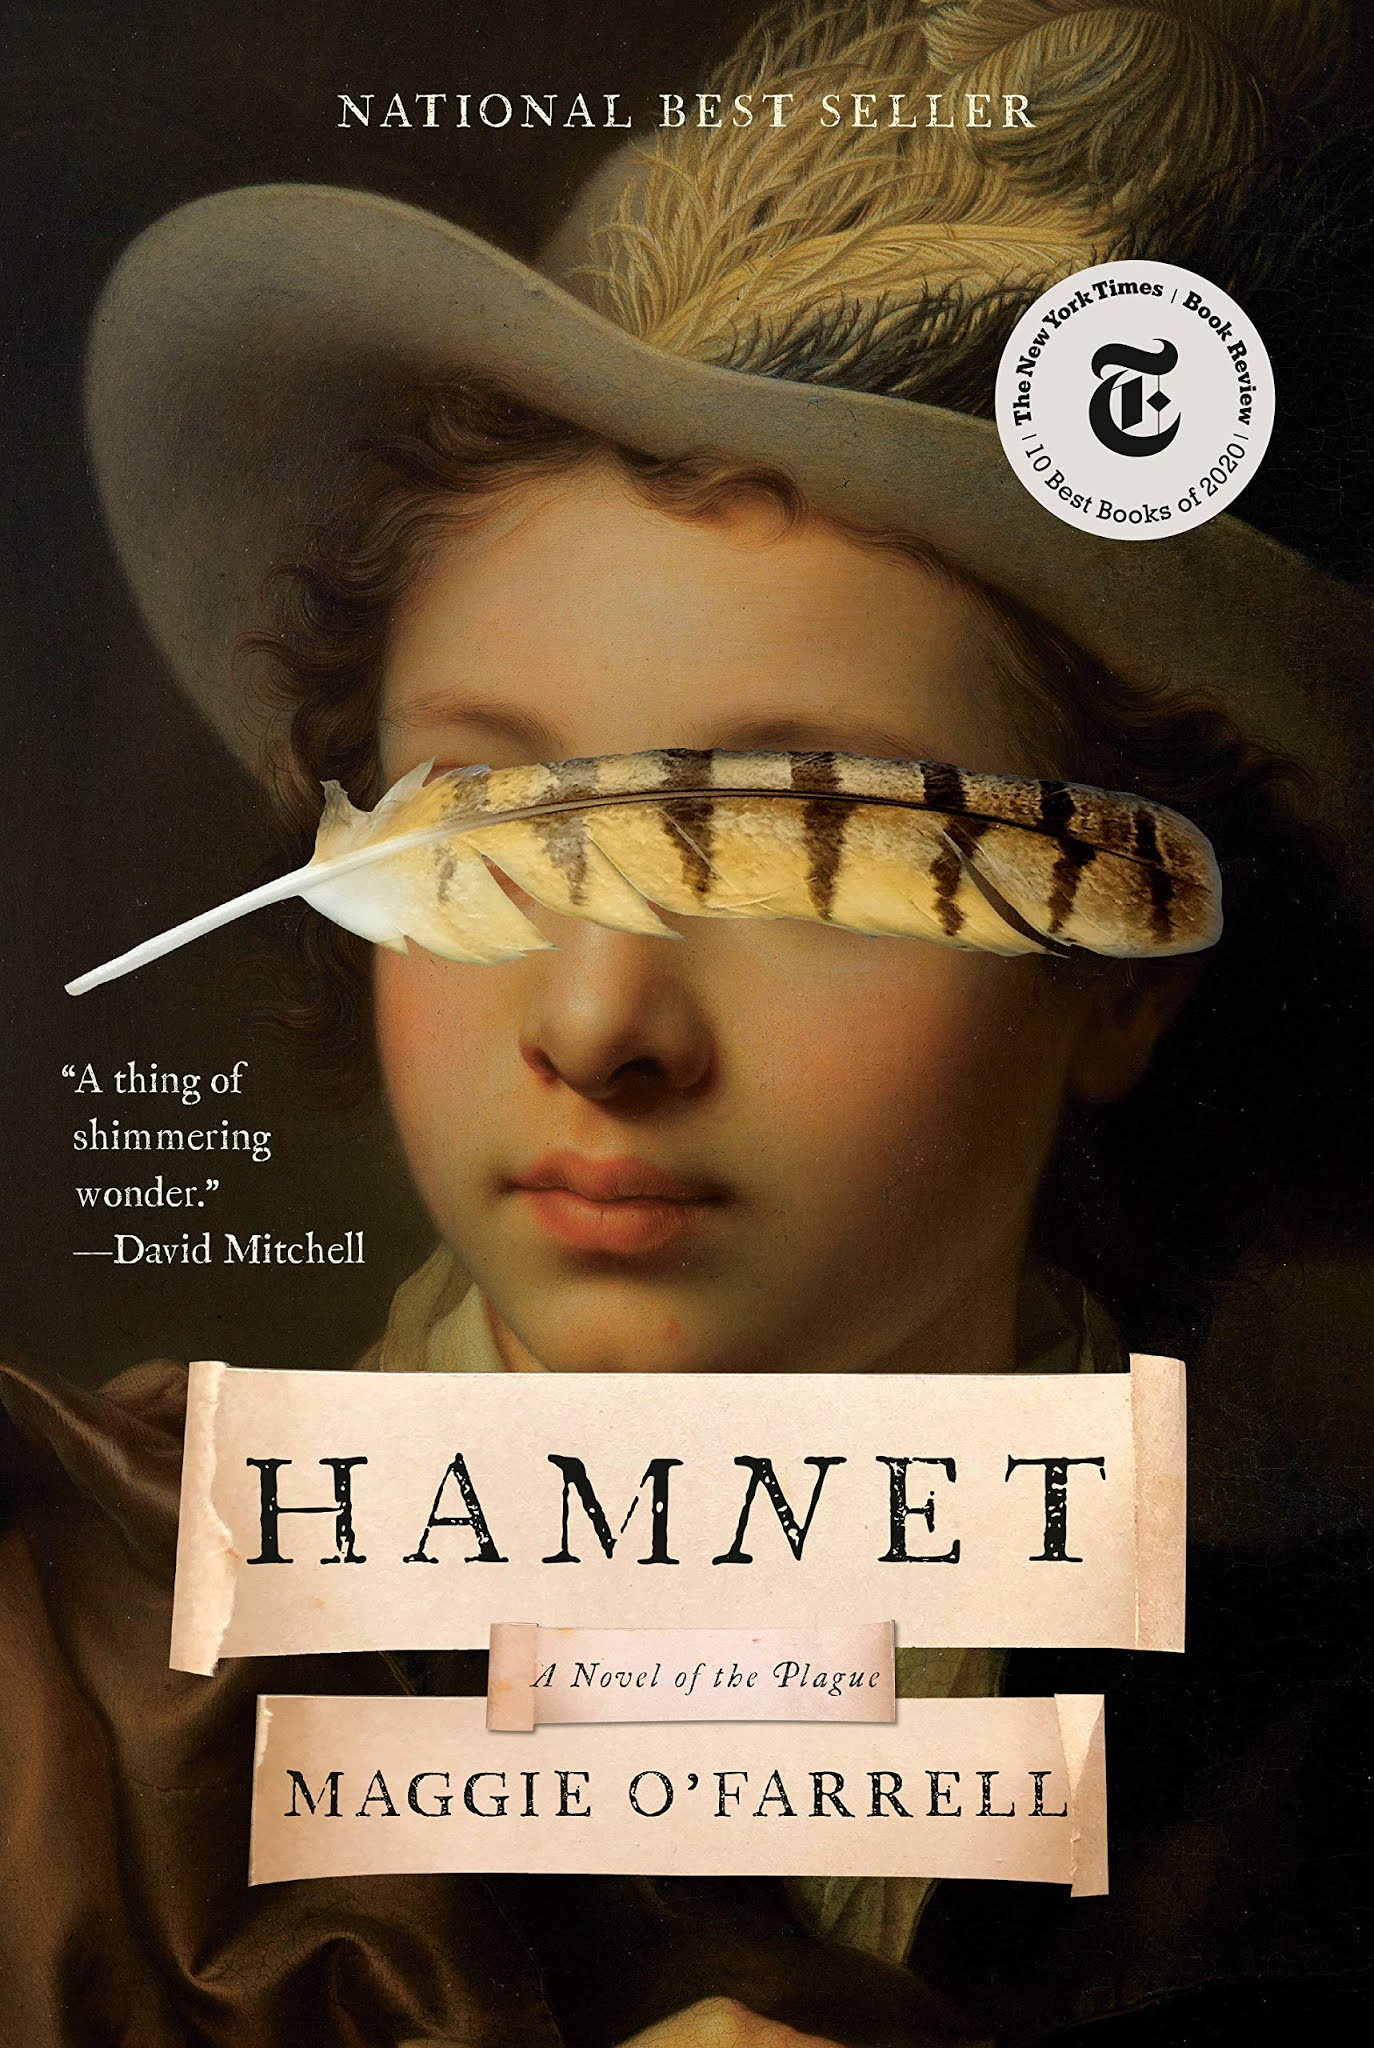 Book cover for Hamnet by Maggie O'Farrell Hamnet in the South Manchester, Chorlton, Cheadle, Fallowfield, Burnage, Levenshulme, Heaton Moor, Heaton Mersey, Heaton Norris, Heaton Chapel, Northenden, and Didsbury book group